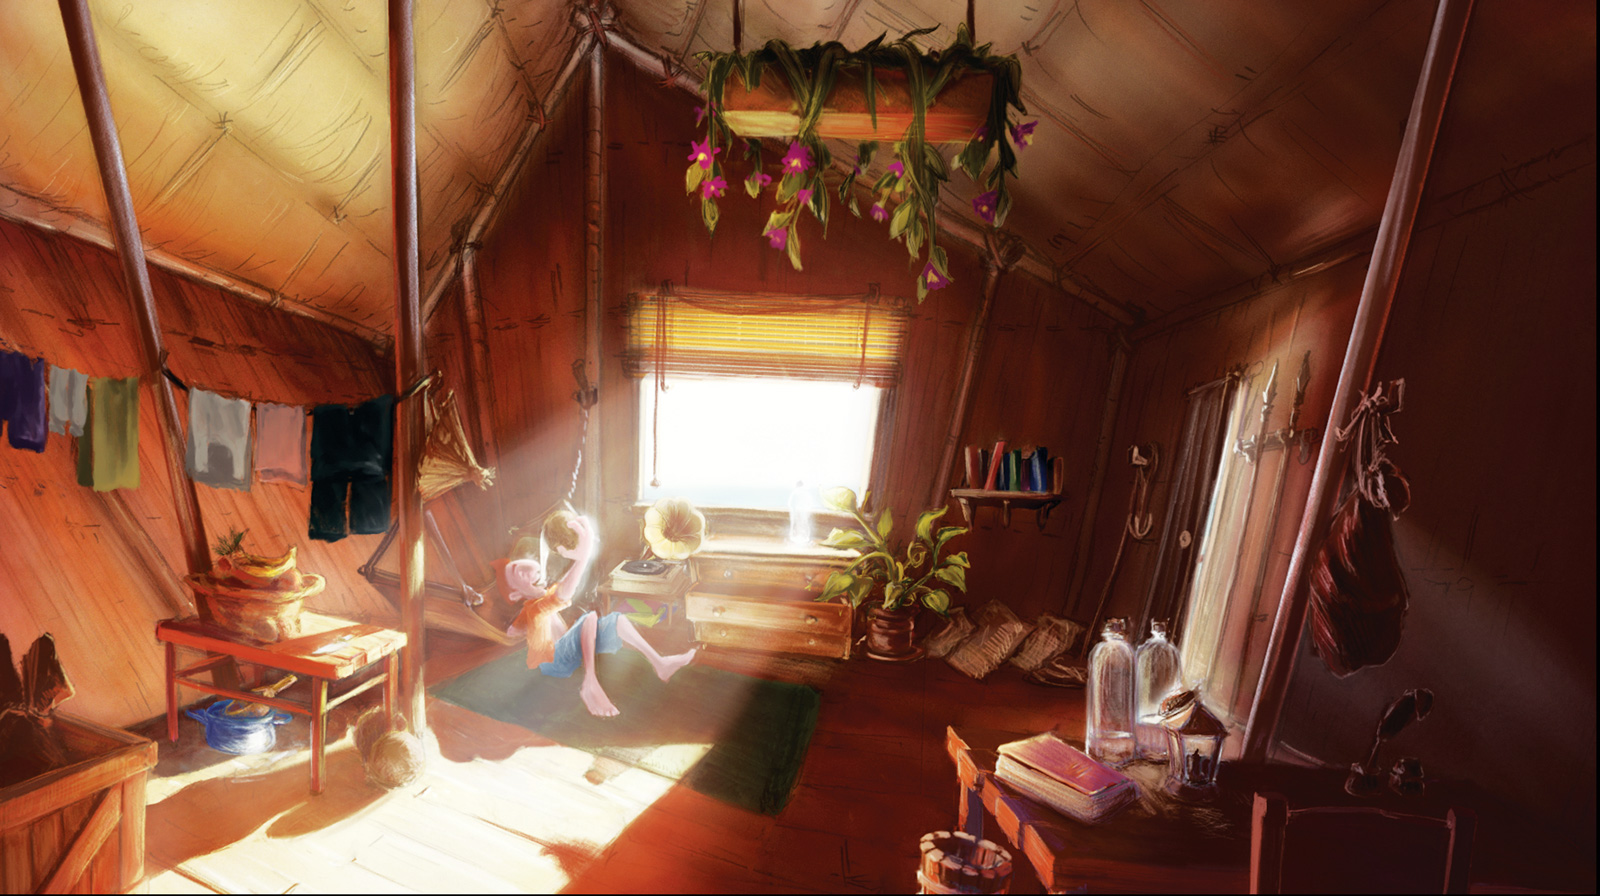 inside-the-cabin-driking-coconut.jpg